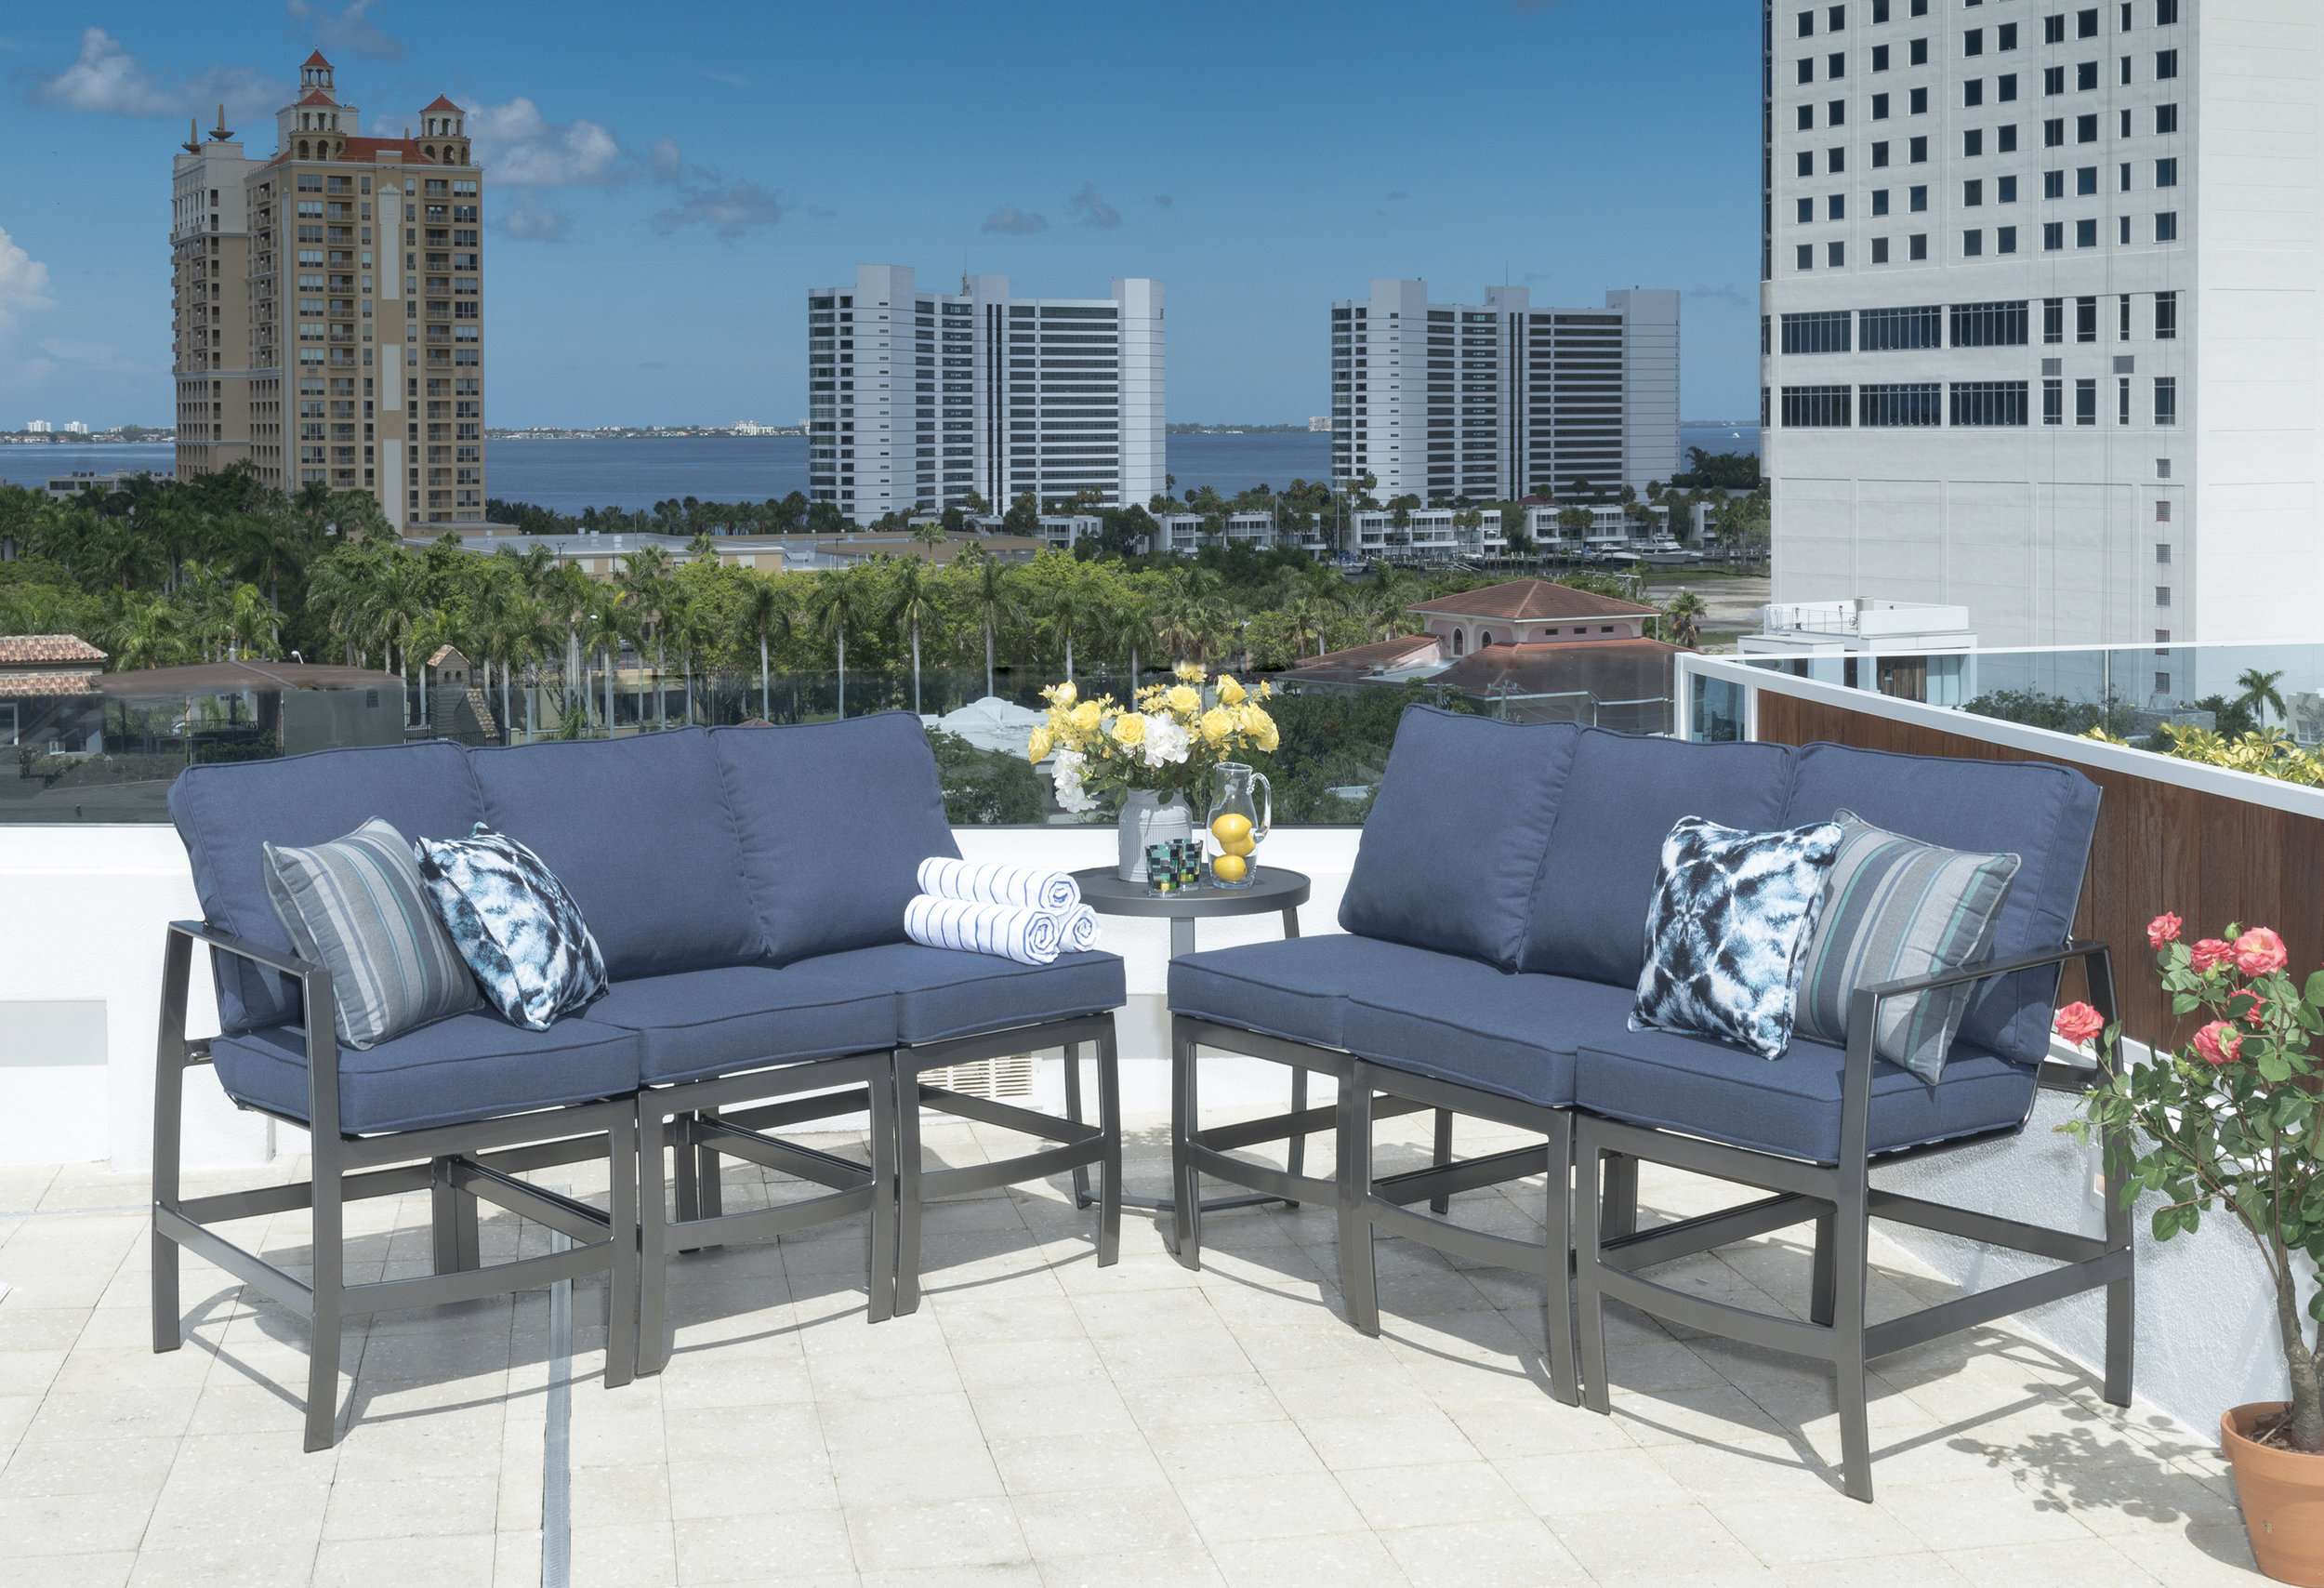 Krisp Balcony Height Seating Collection offers a unique design perspective while providing beauty and relaxed comfort.